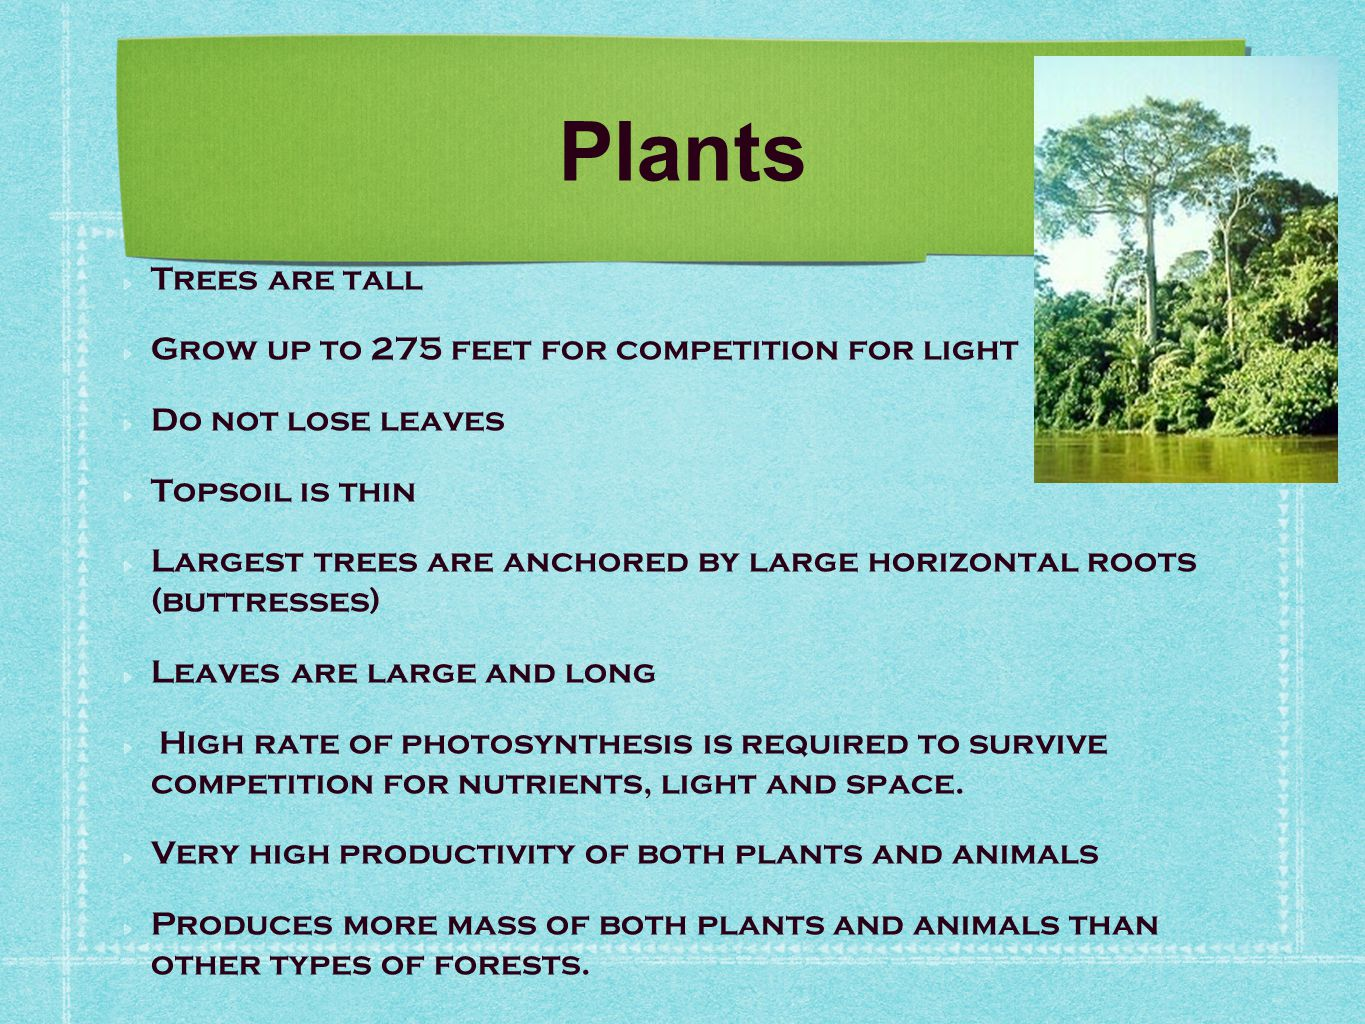 Plants Trees are tall Grow up to 275 feet for competition for light